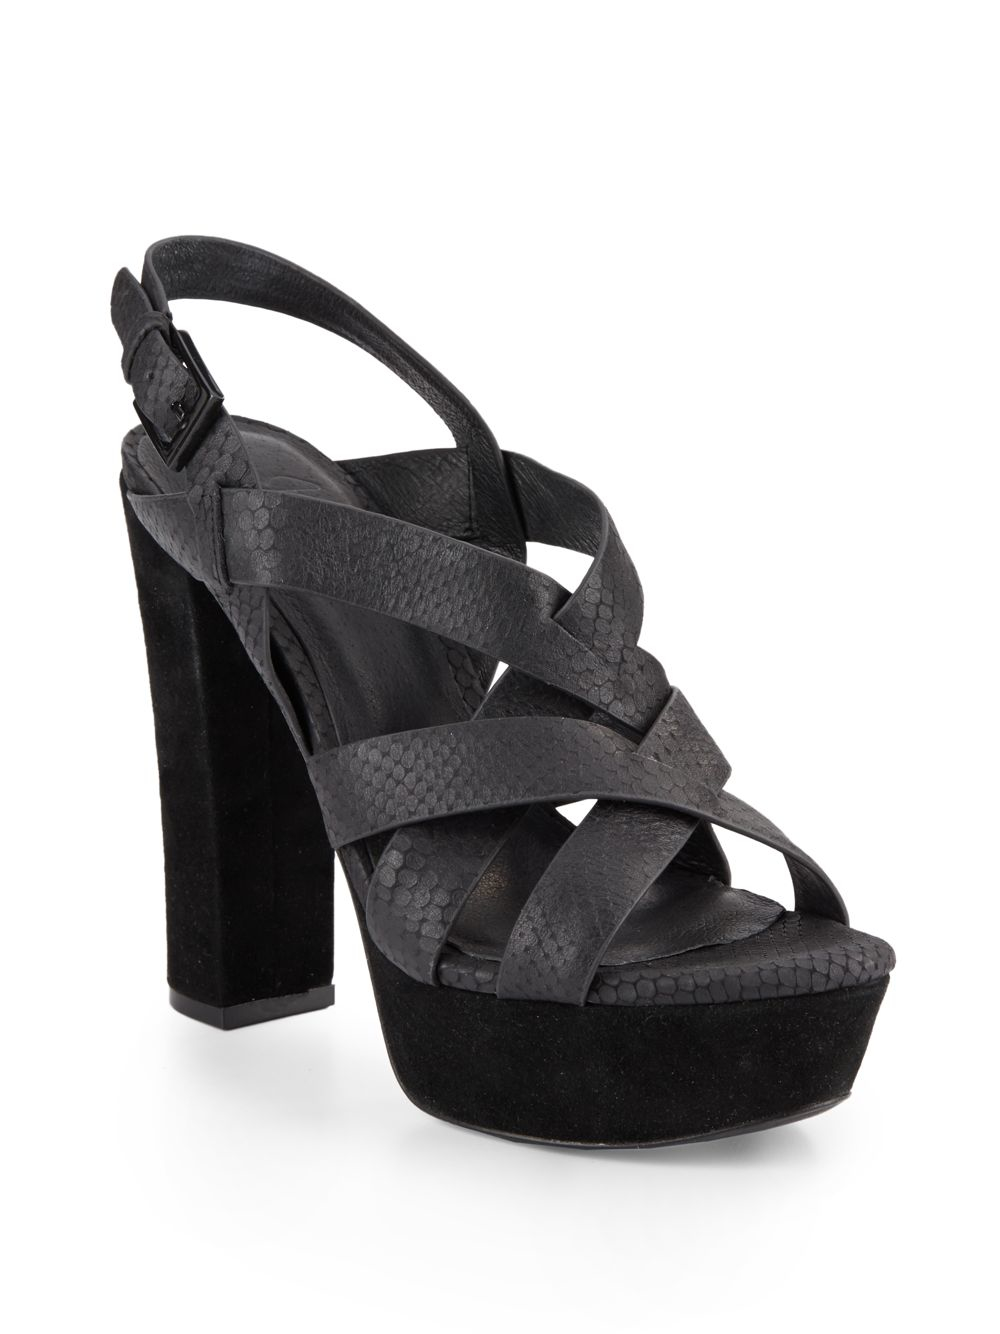 cdaea2aa2d3 Lyst - Joie Inez Snakeskin-embossed Leather Platform Sandals in Black